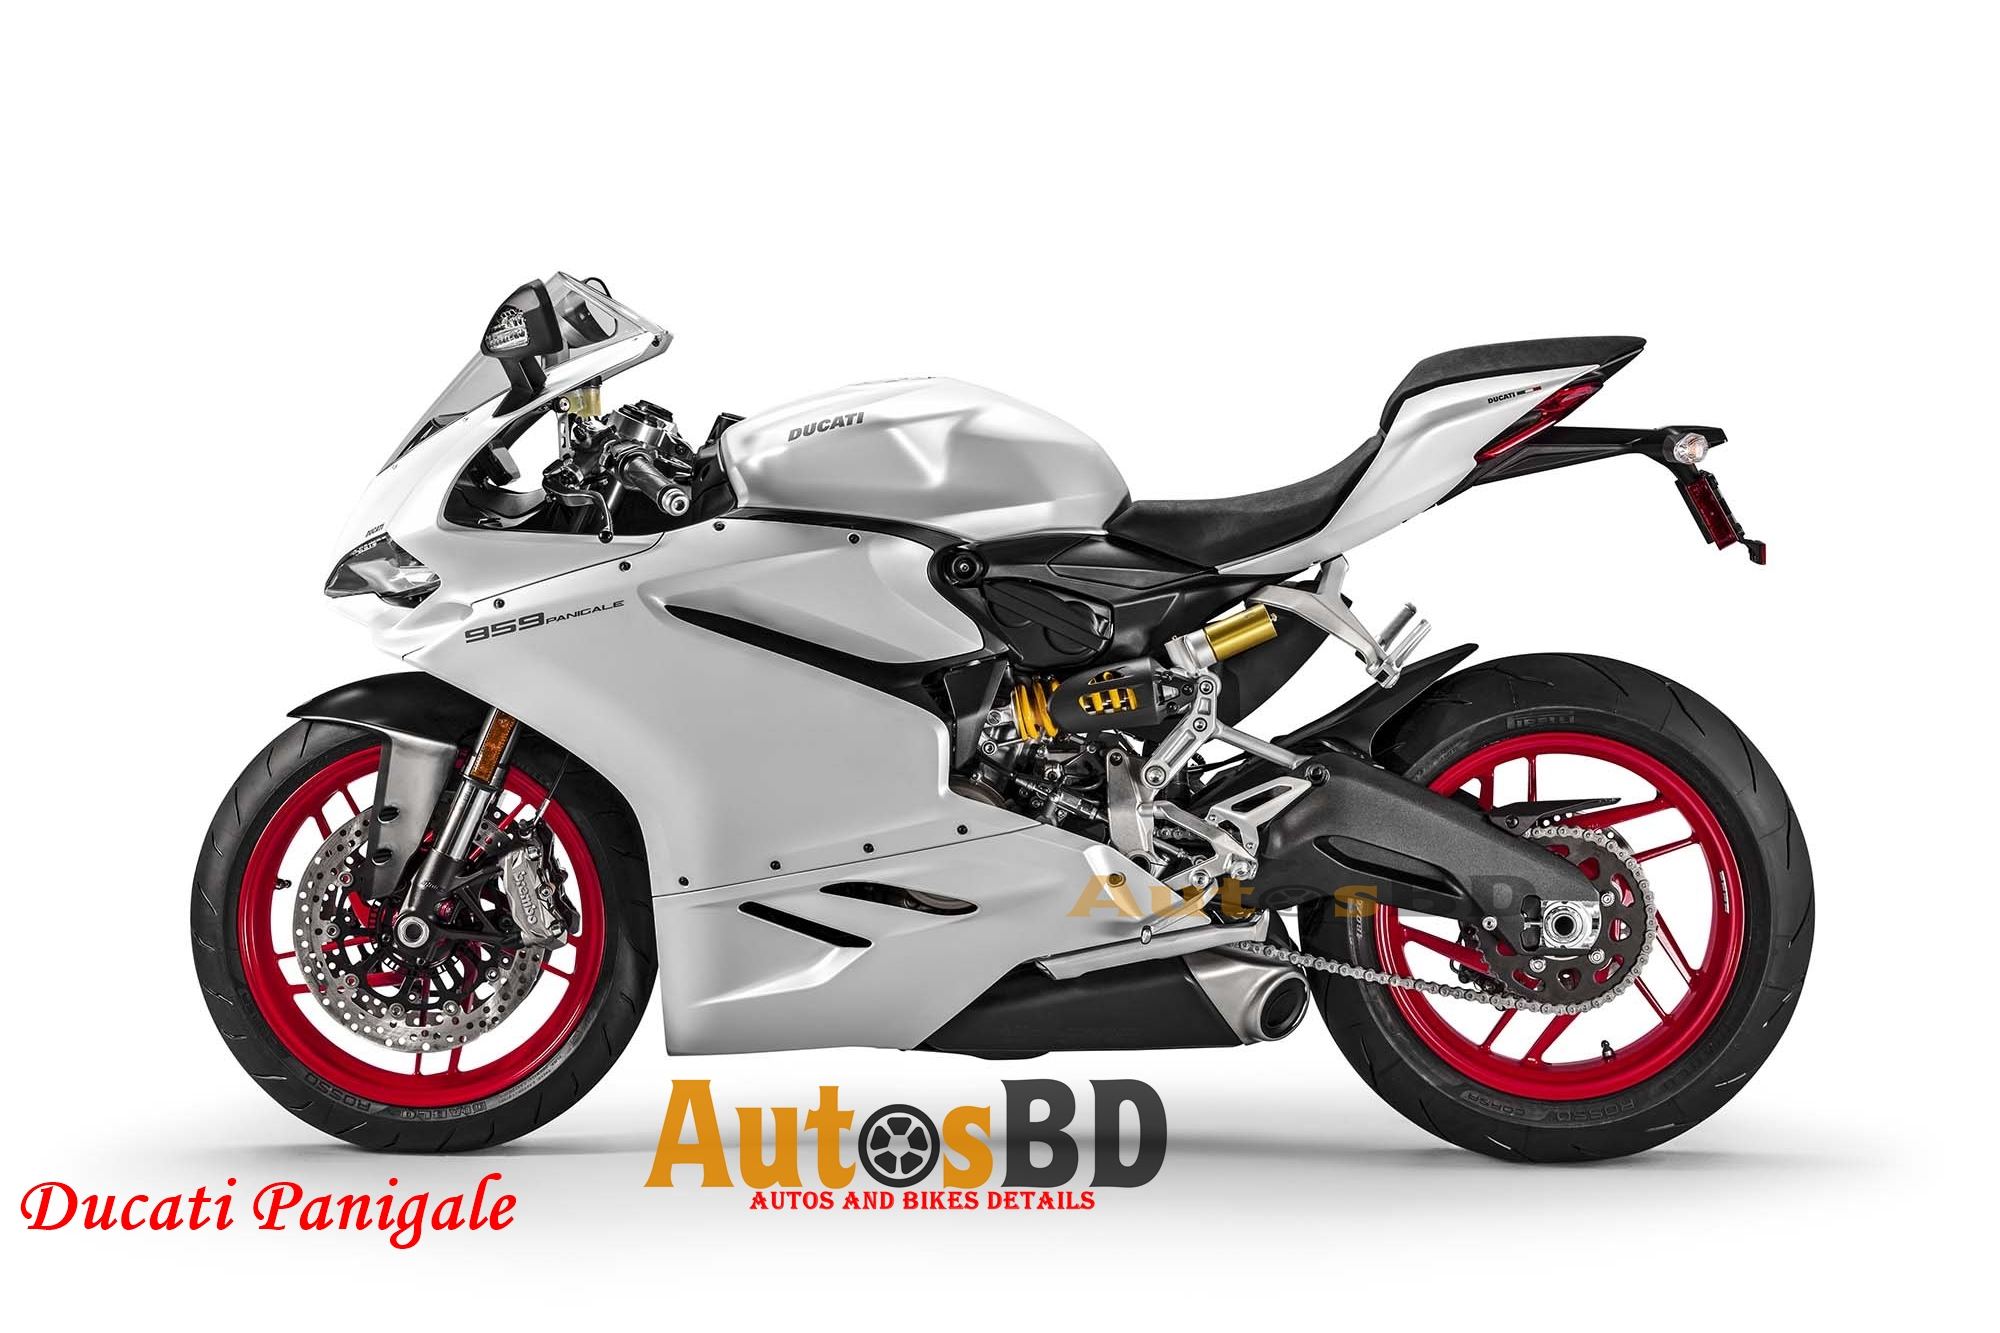 Ducati Panigale Motorcycle Specification